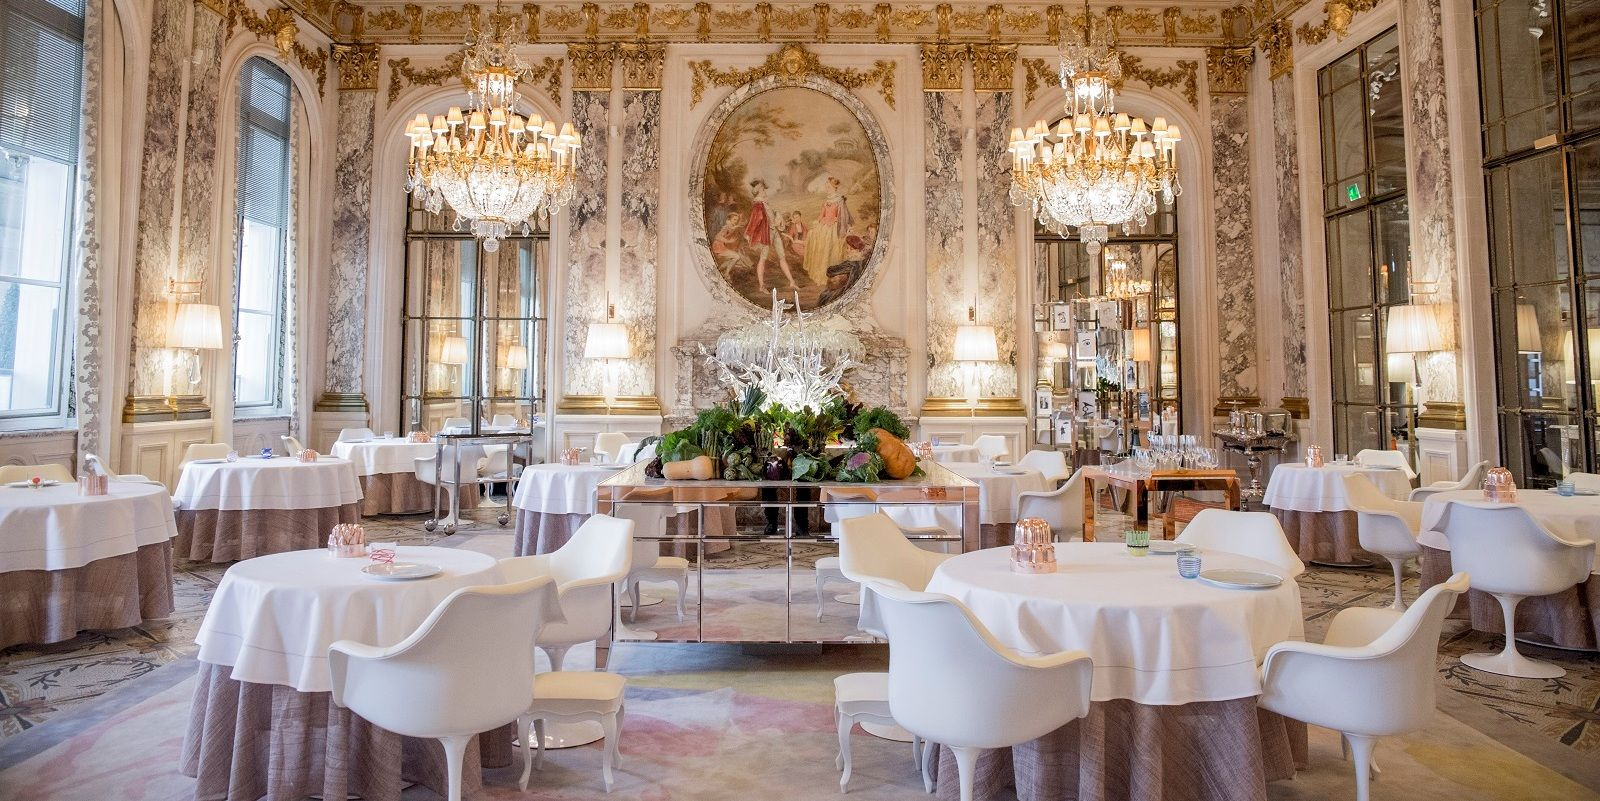 Restaurants And Bars At Le Meurice Dorchester Collection Paris Restaurants Paris Hotels Best Paris Hotels